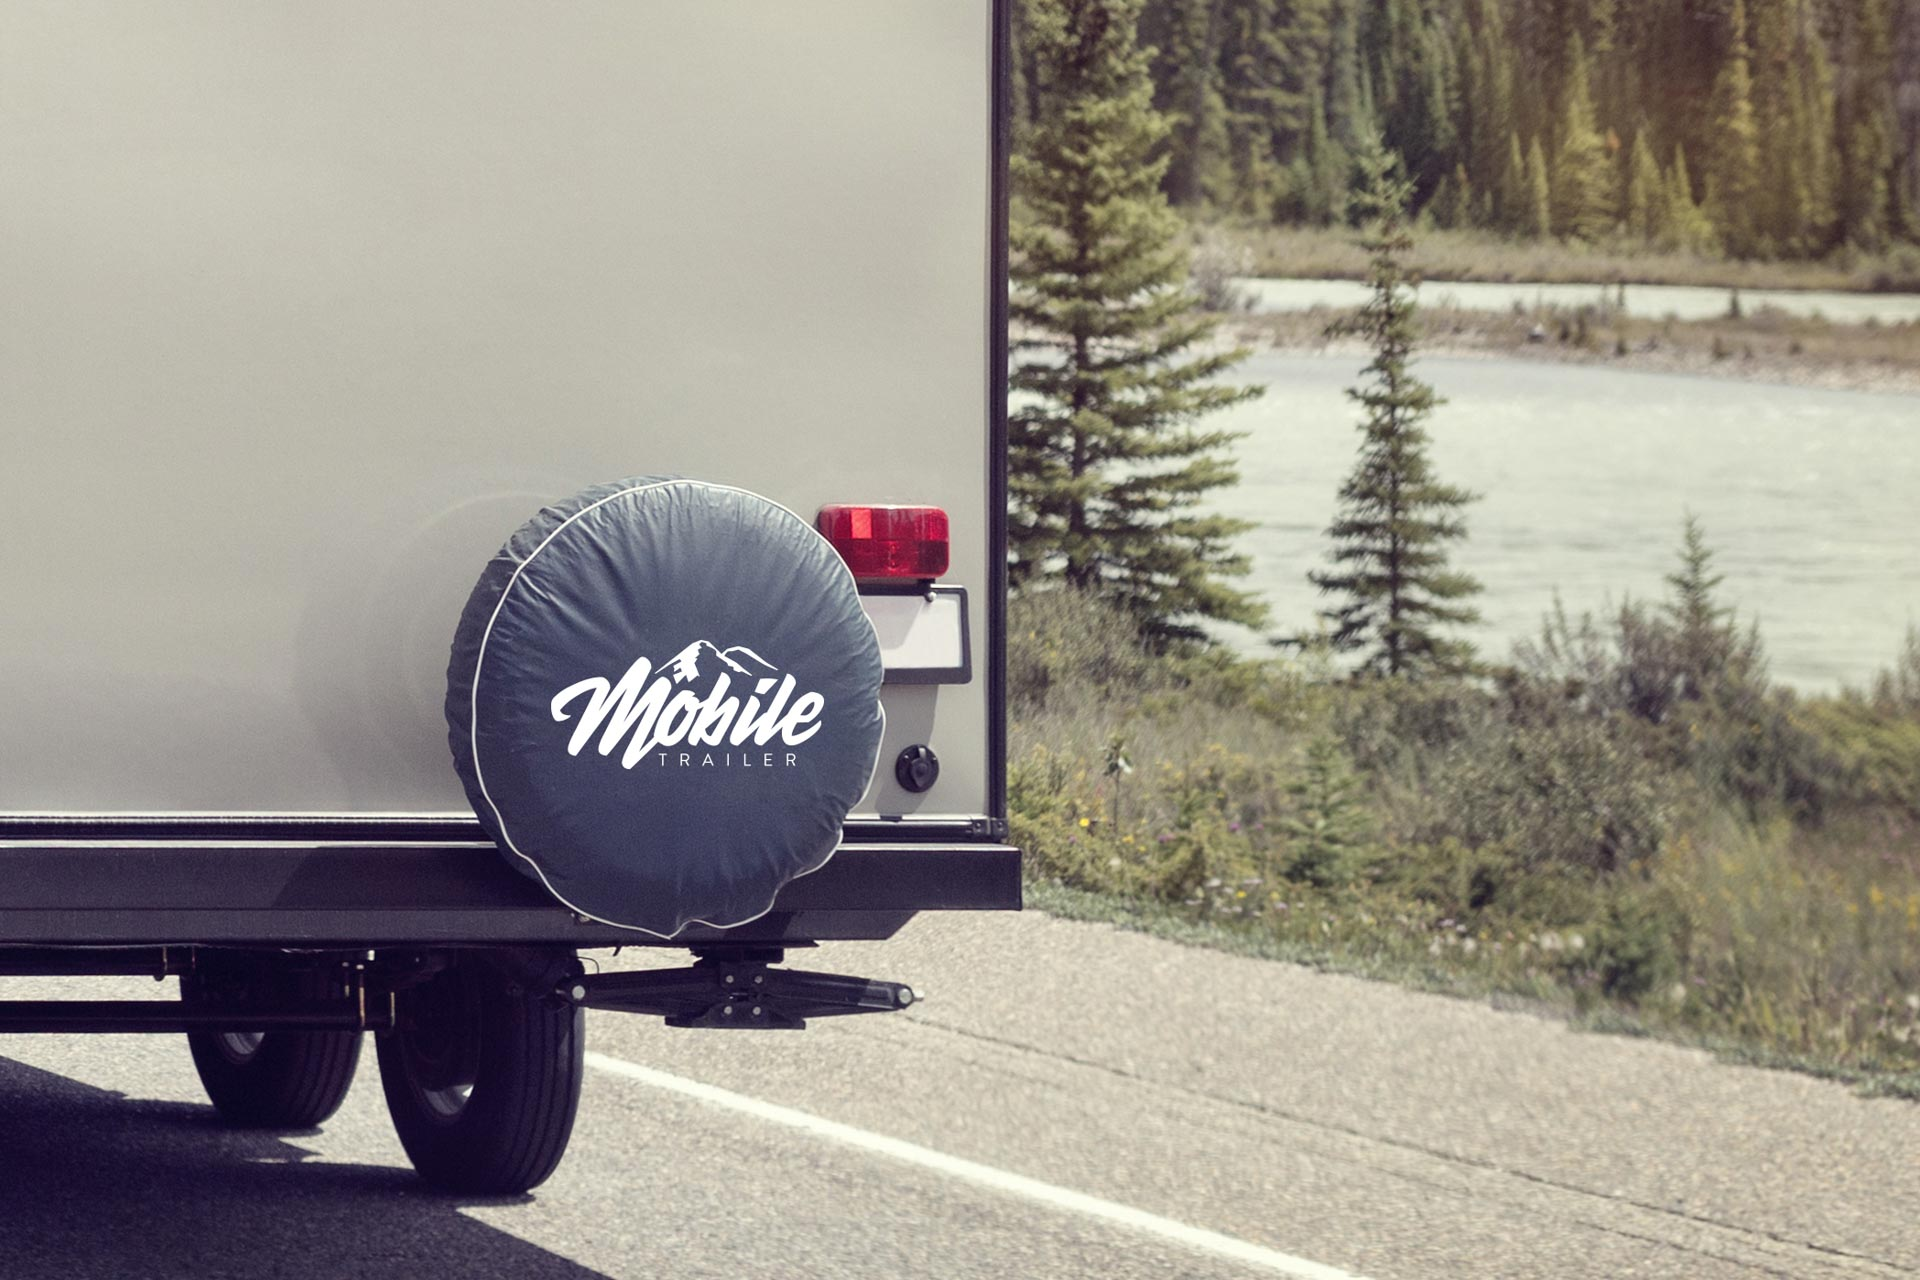 Towing Hitch Installation Mobile Trailer Recreation Vehicle How To Install Your Brake Control Sales And Service St Johns Nl